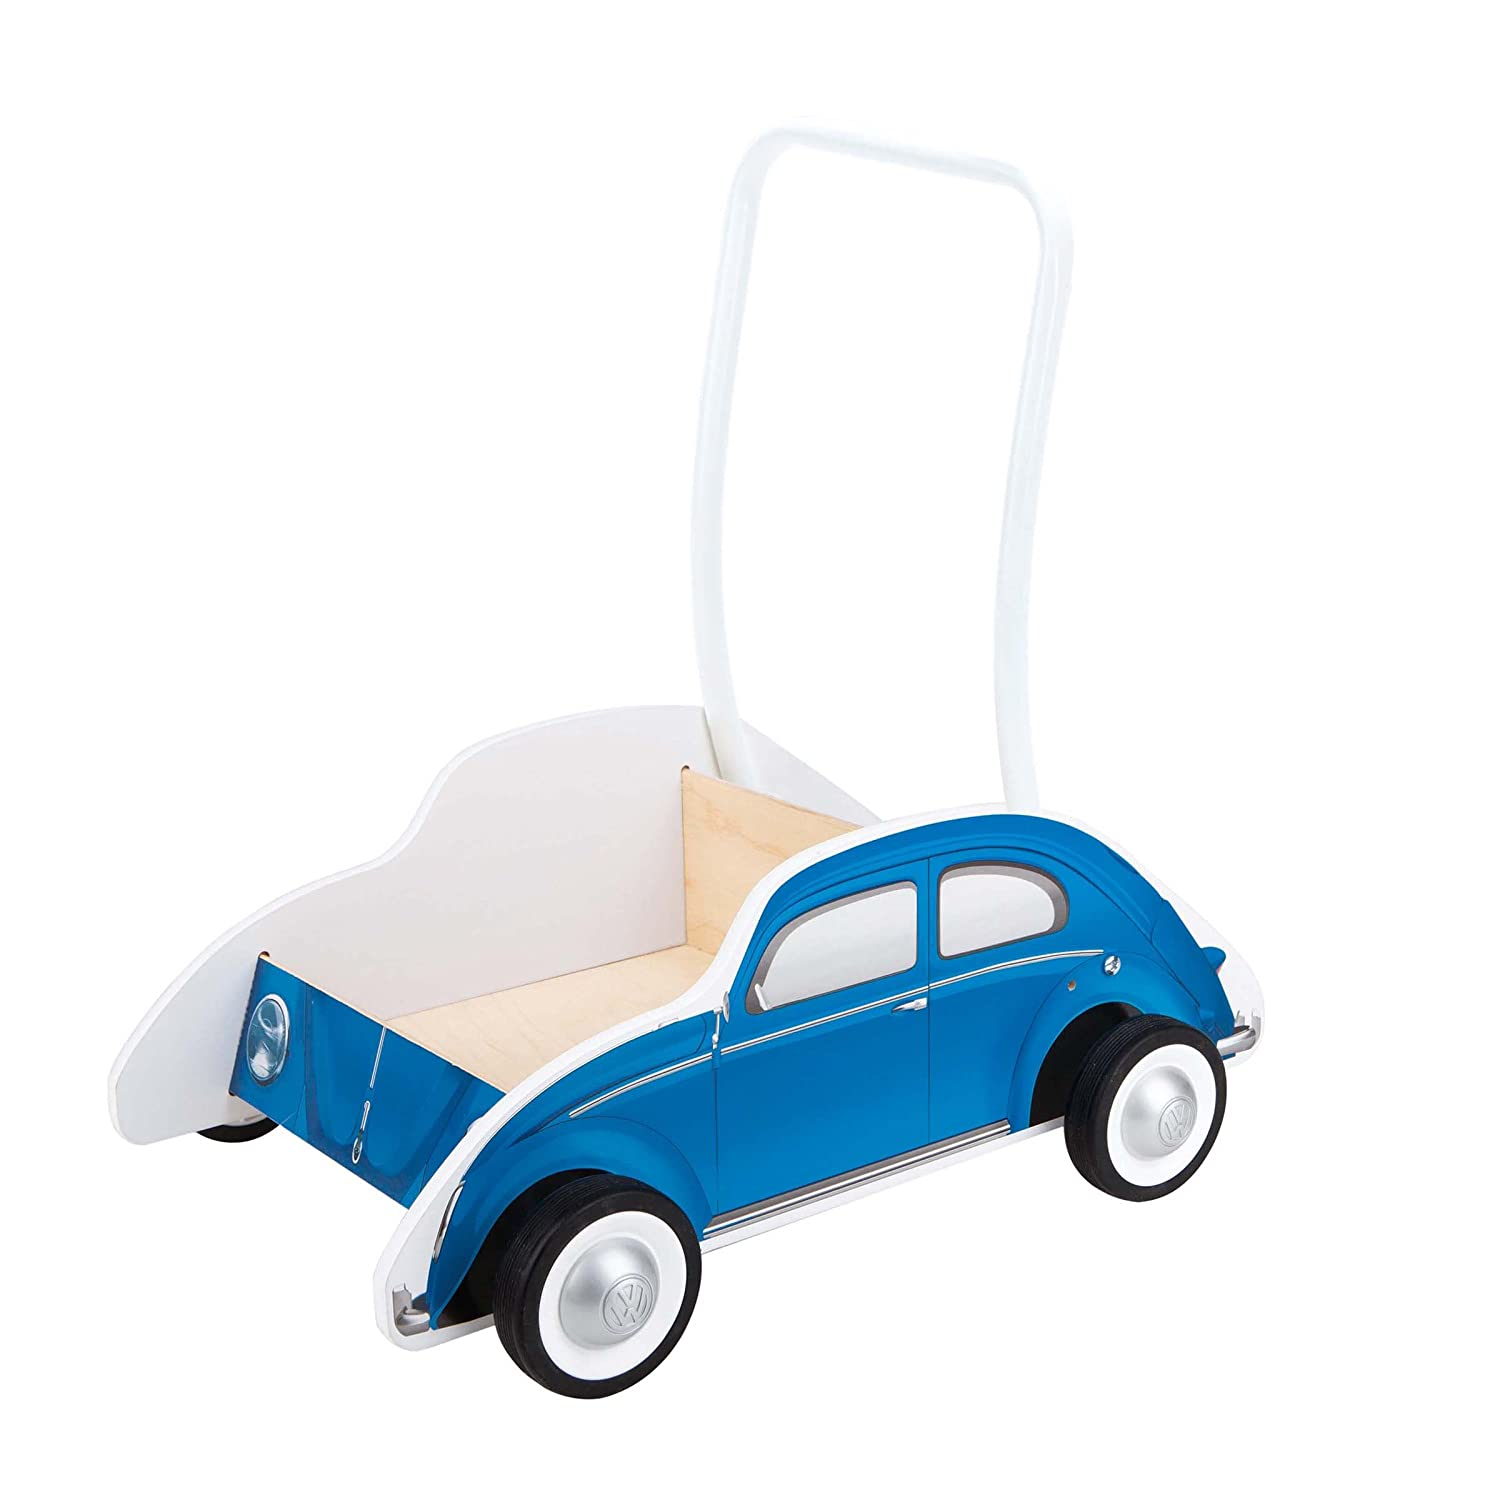 Hape E0382 Käfer Lauflernwagen, blau Hape International AG